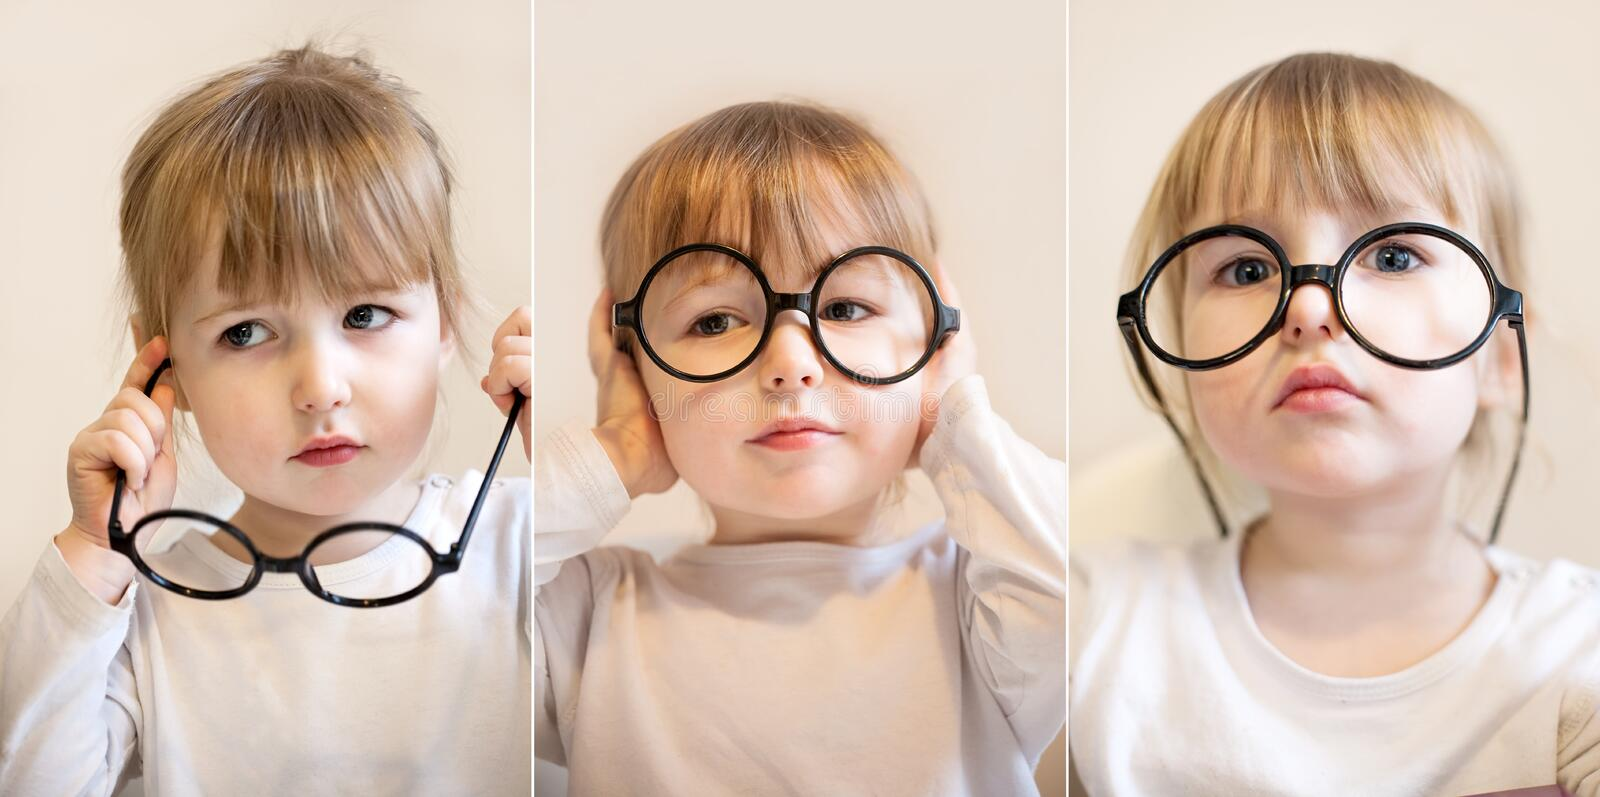 Funny child white girl with big round black teacher glasses on her nose closeup stock photo